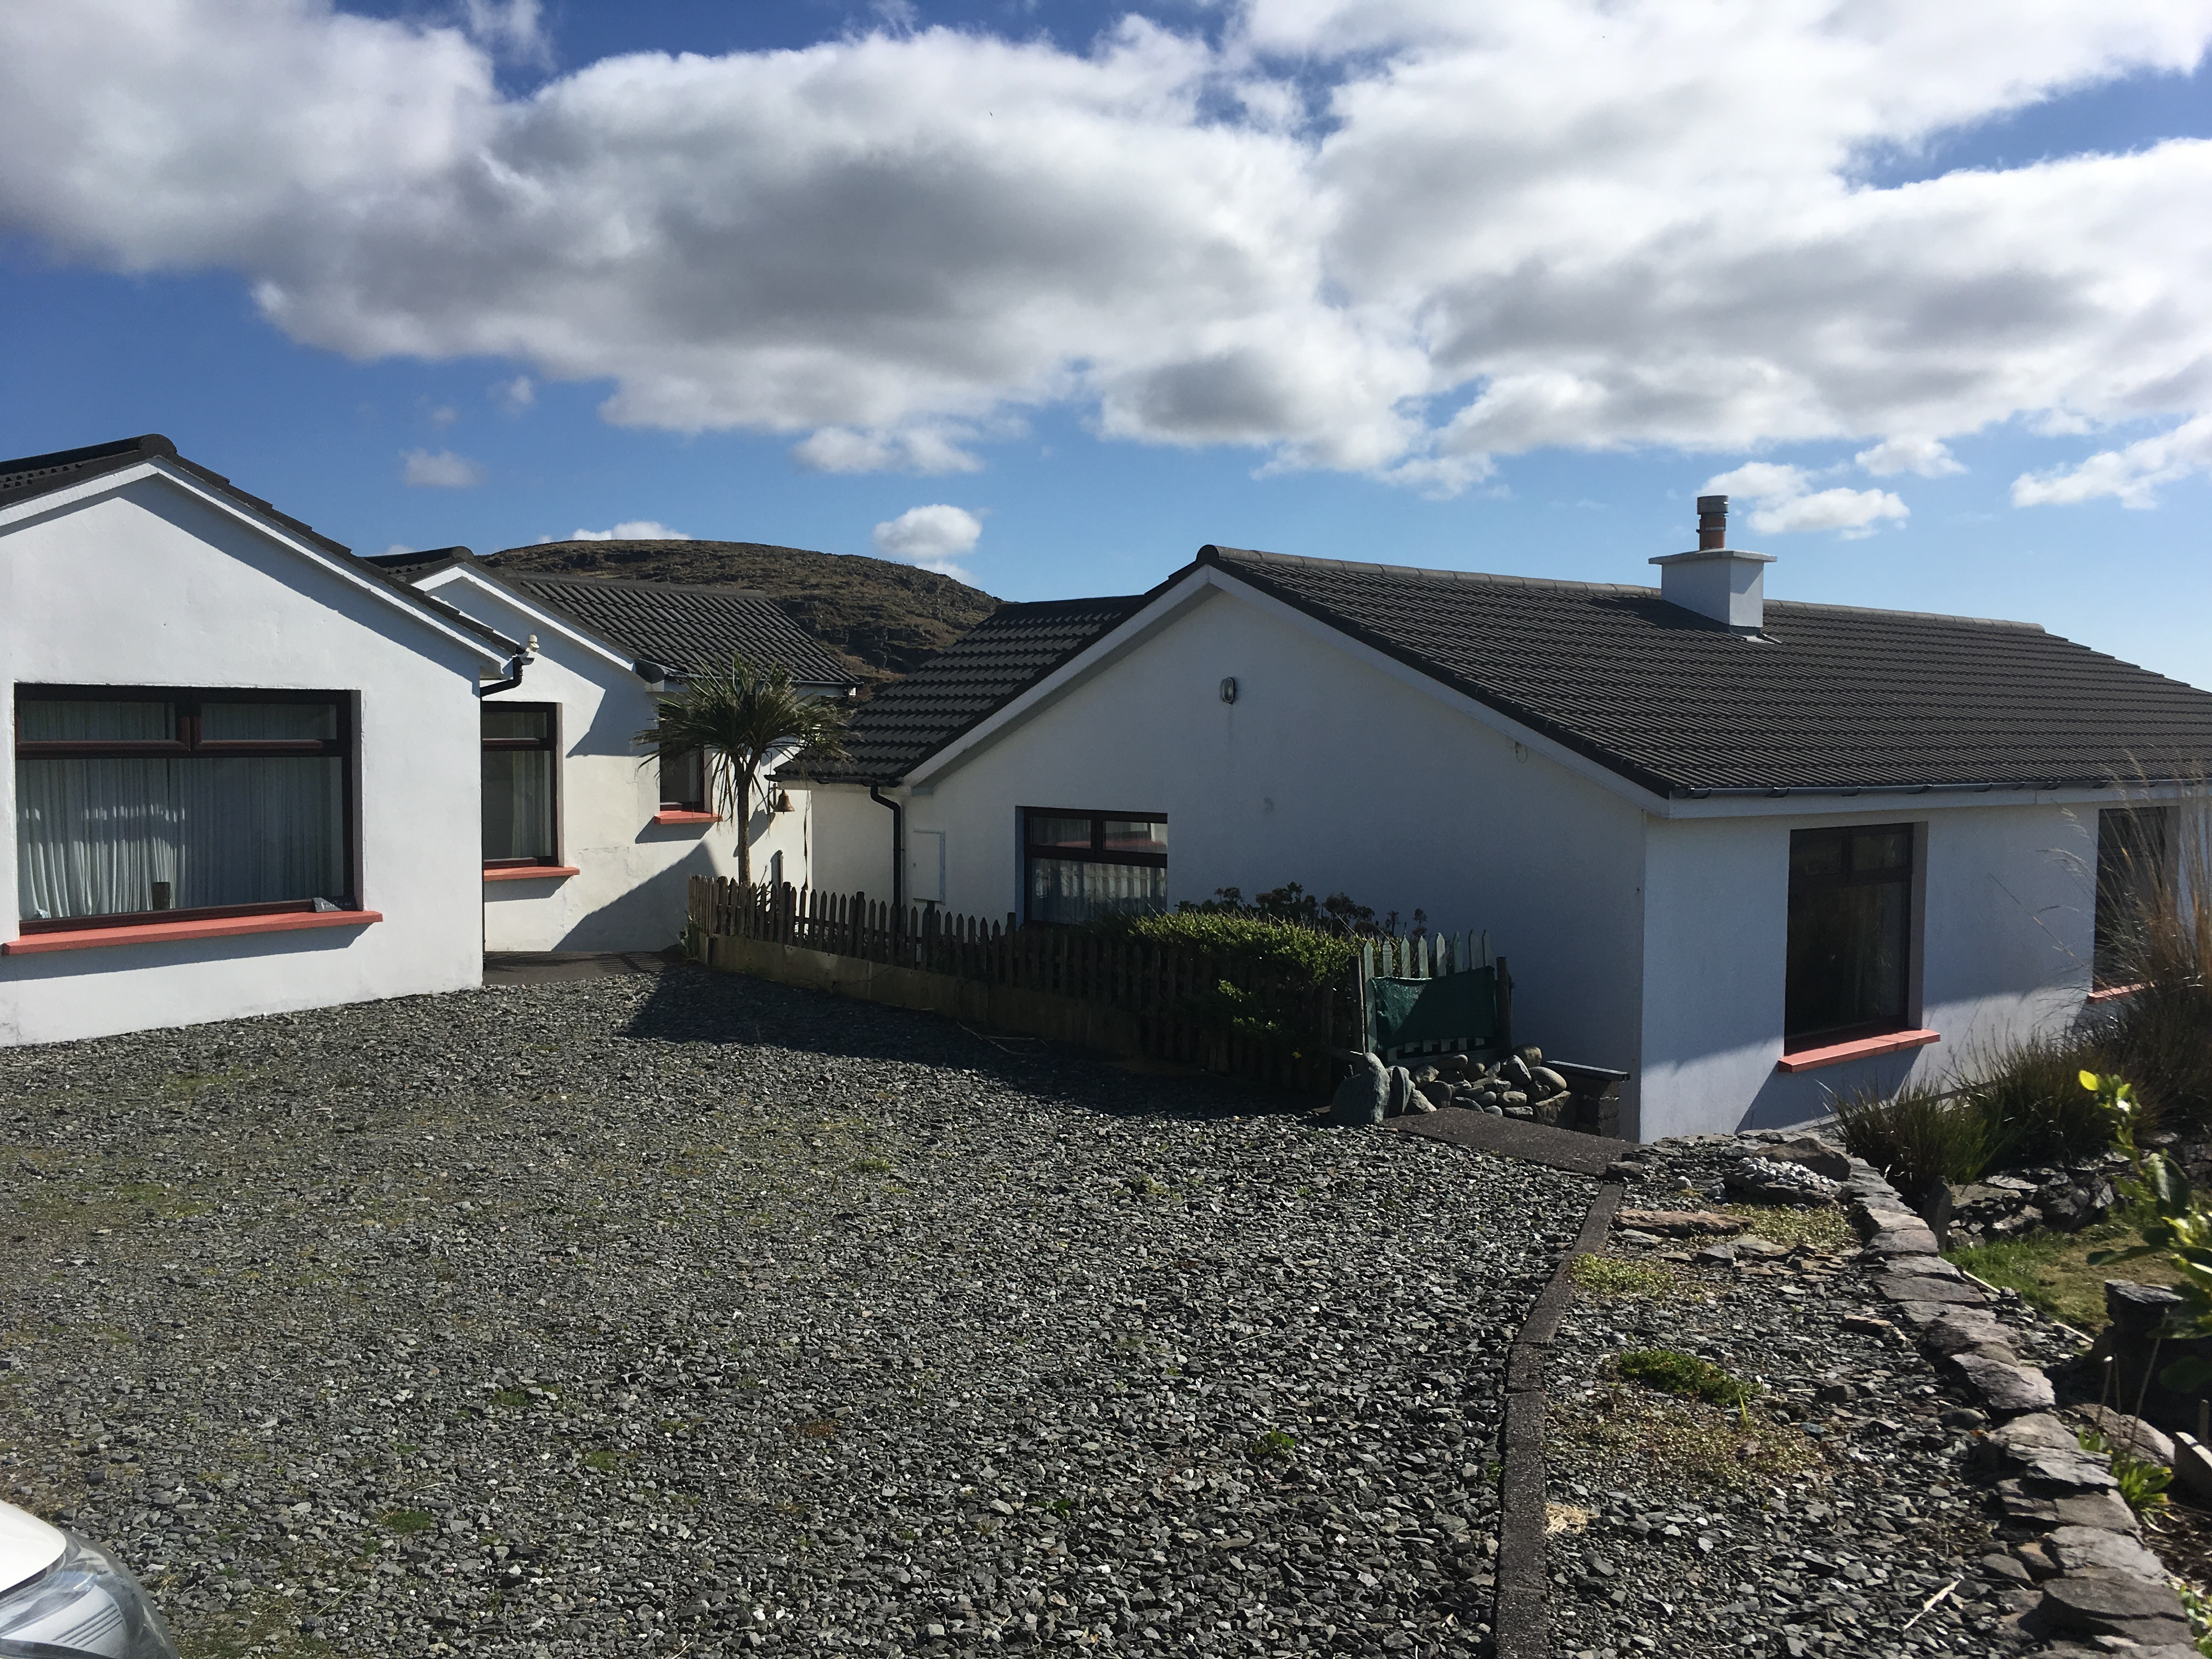 FOR SALE – Kimego West, Cuascrome, Caherciveen , Dwelling house and a detached Apartment